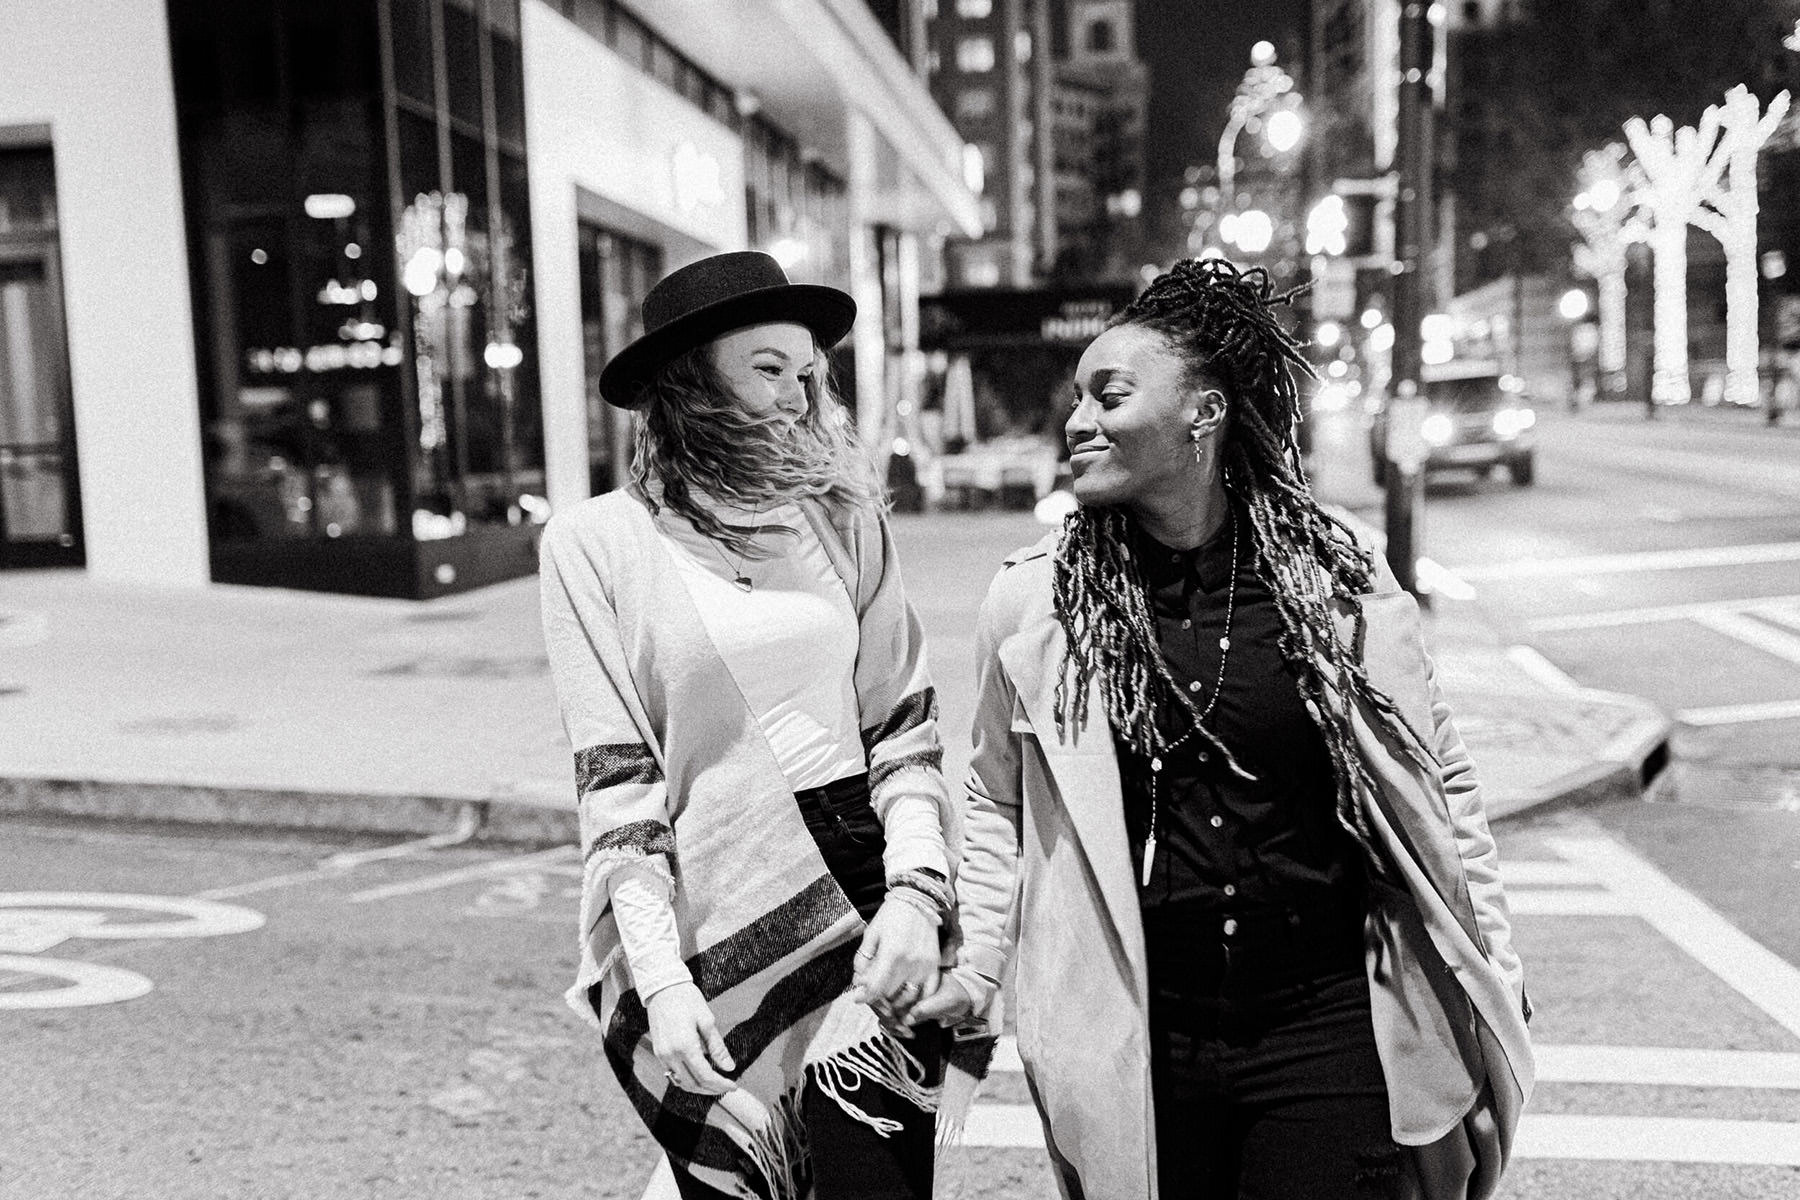 A couple looks at each other while crossing the street